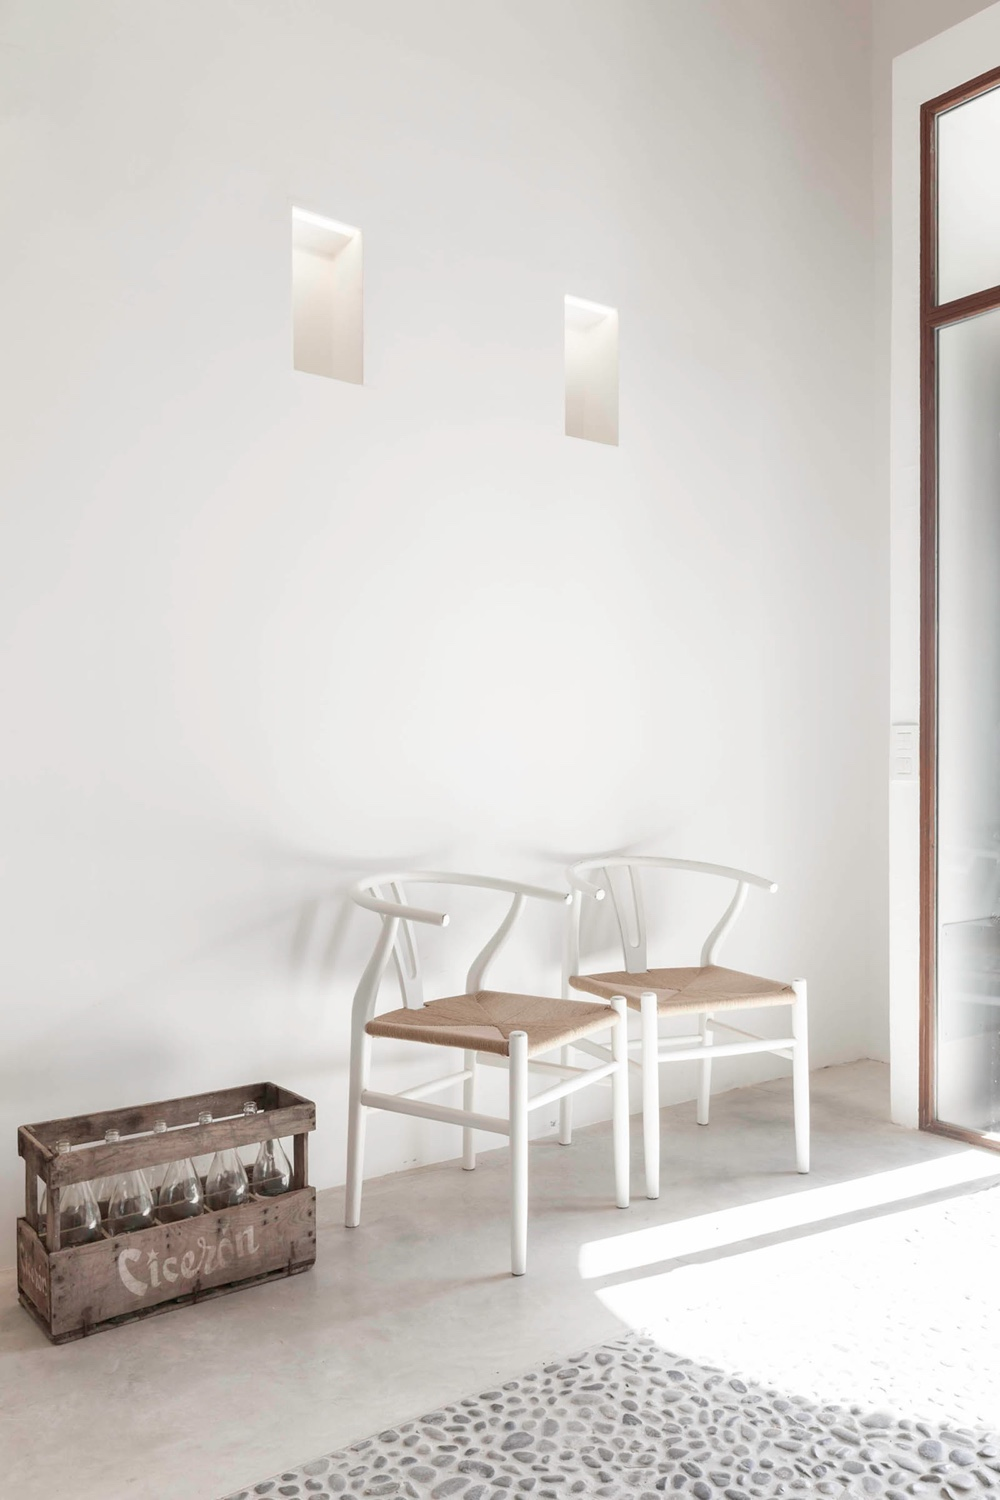 White CH24 Wishbone Chairs from sit with poise in thisFelanitx renovation byMunarqarchitects studio. Image©Gonçal Garciavia Munarq.